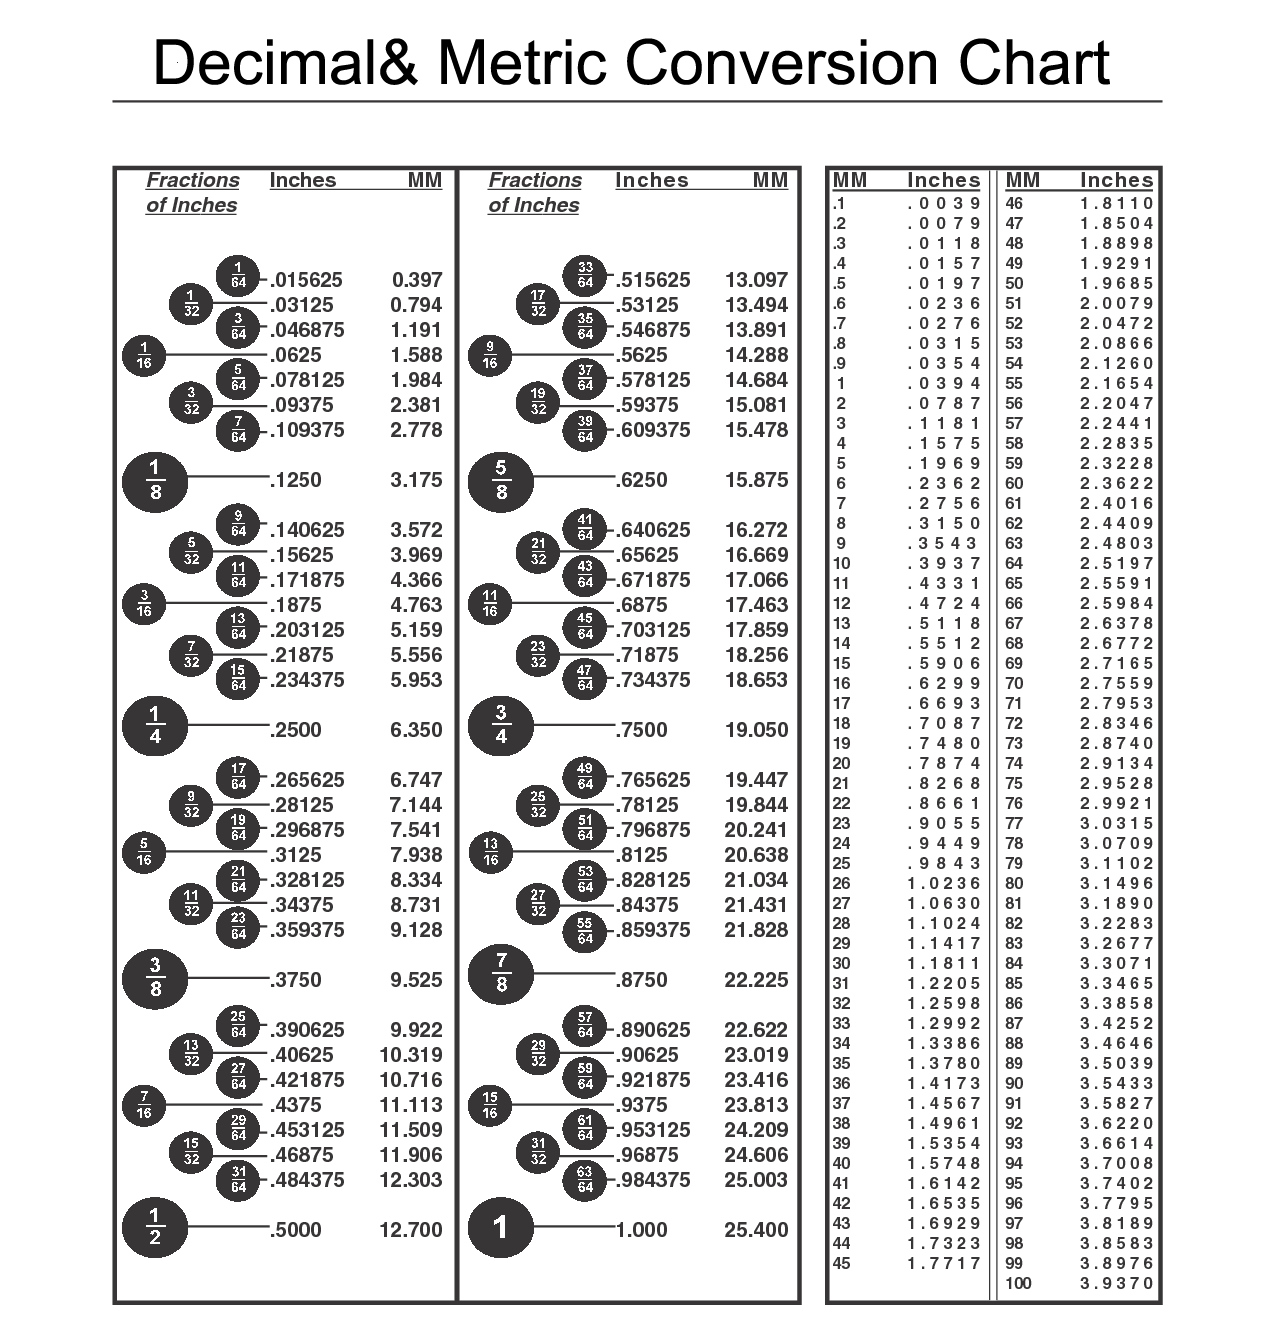 Chart Conversion Fraction Metric Printable Decimal Pictures to Pin on Pinterest - PinsDaddy